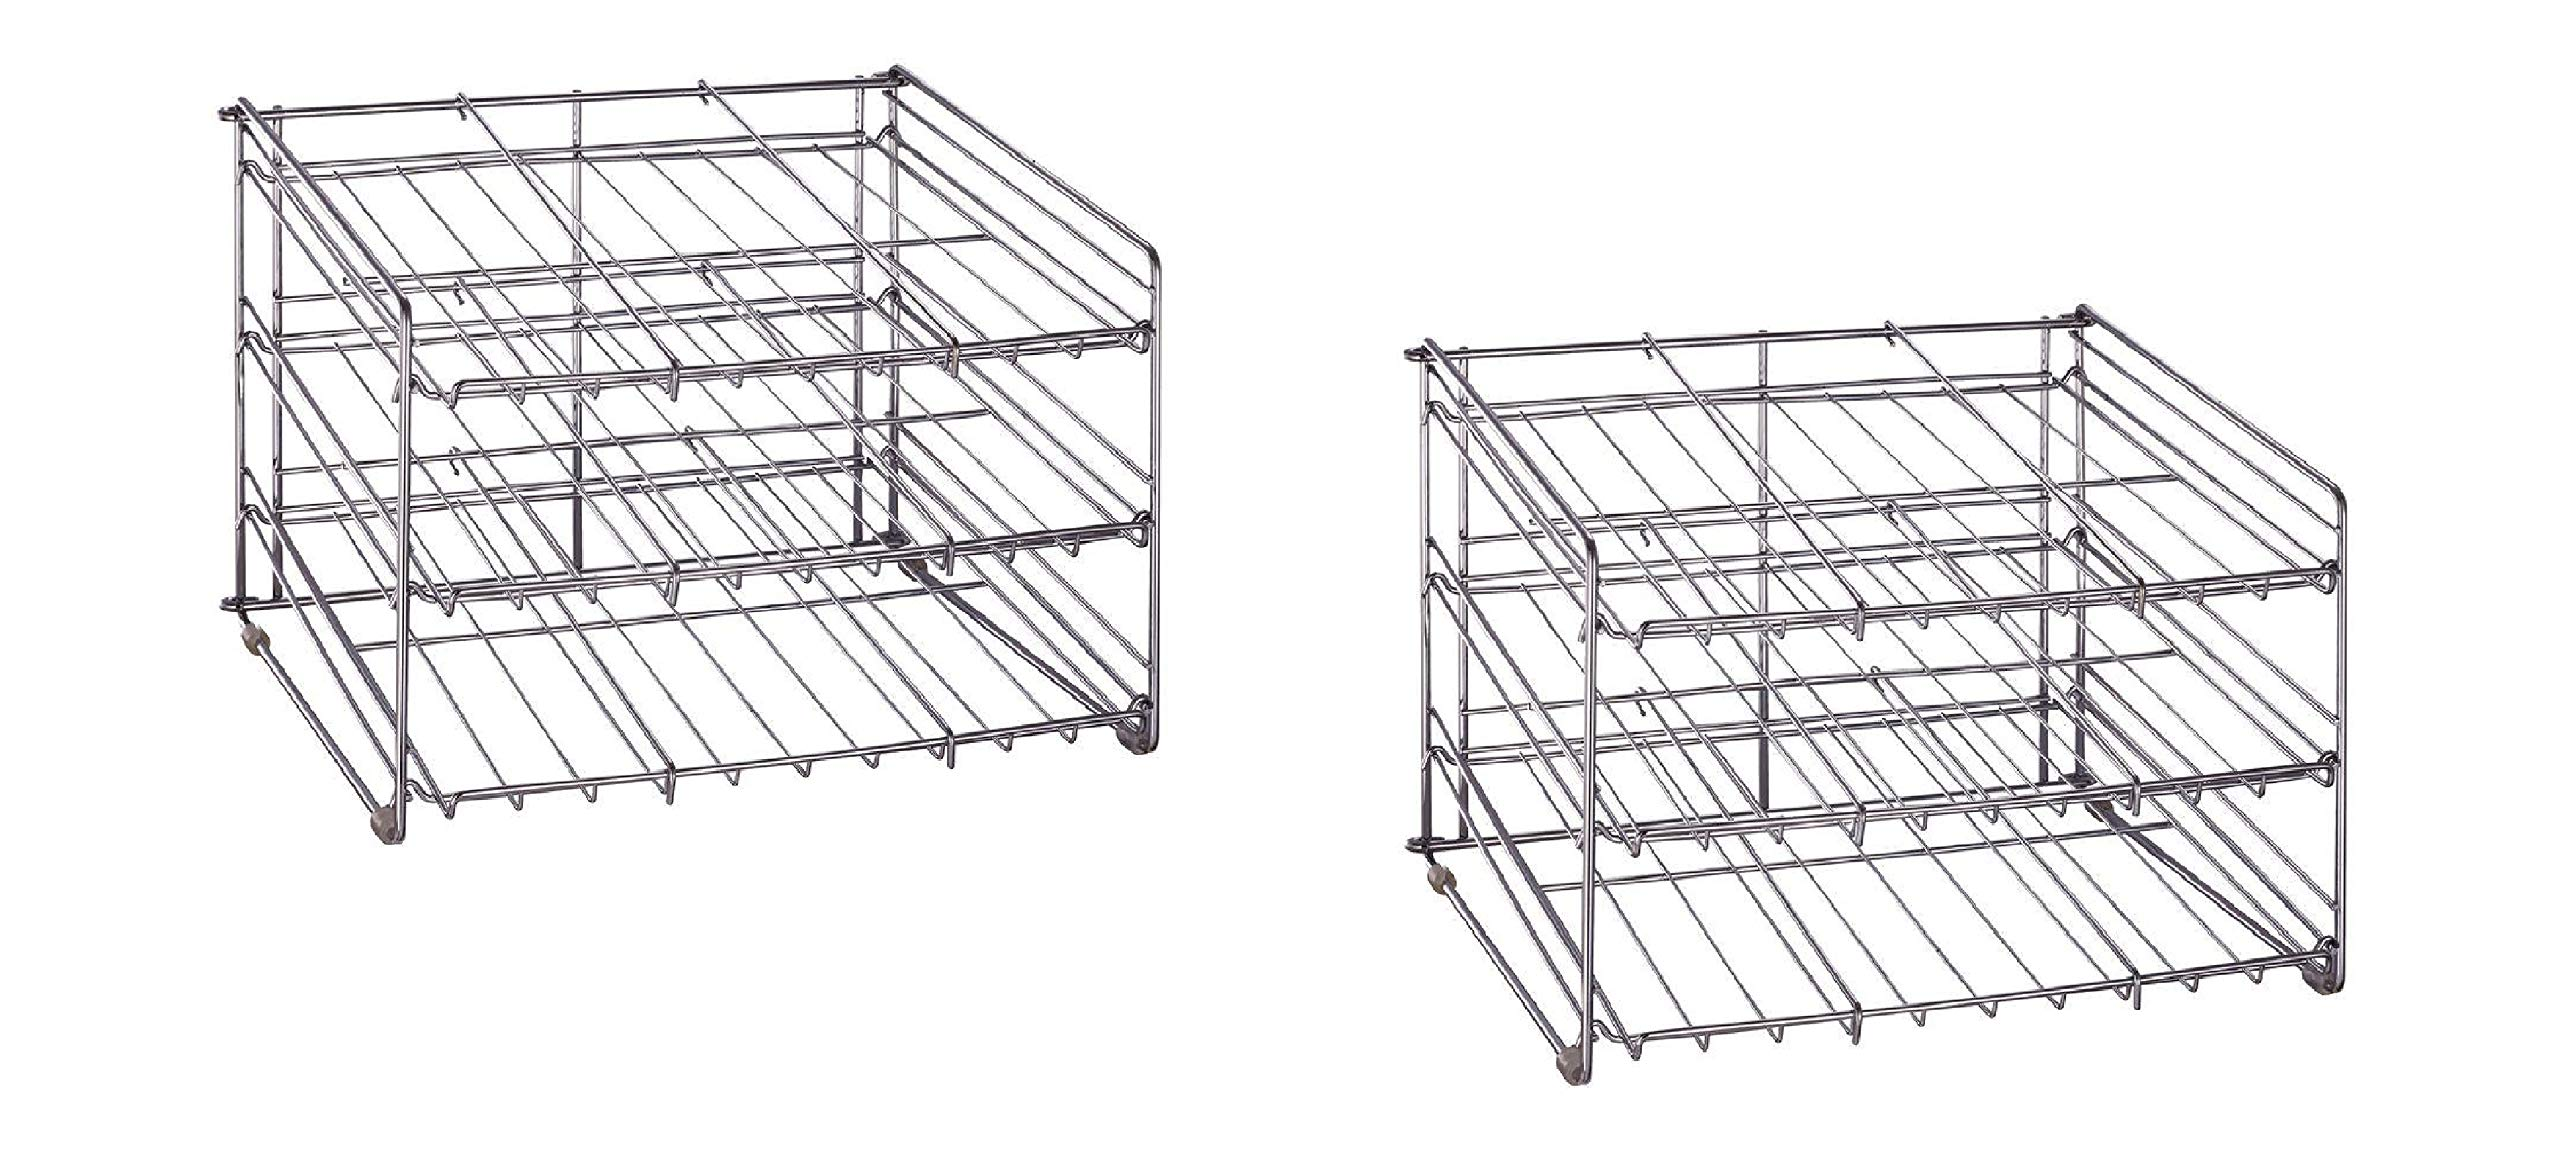 2 Pack - Chrome Wire Can Storage Rack - (15.87 in. x 18 in. x 12.75 in.) Slanted 3 Tier Design, Perfect Storage For Any Kitchen